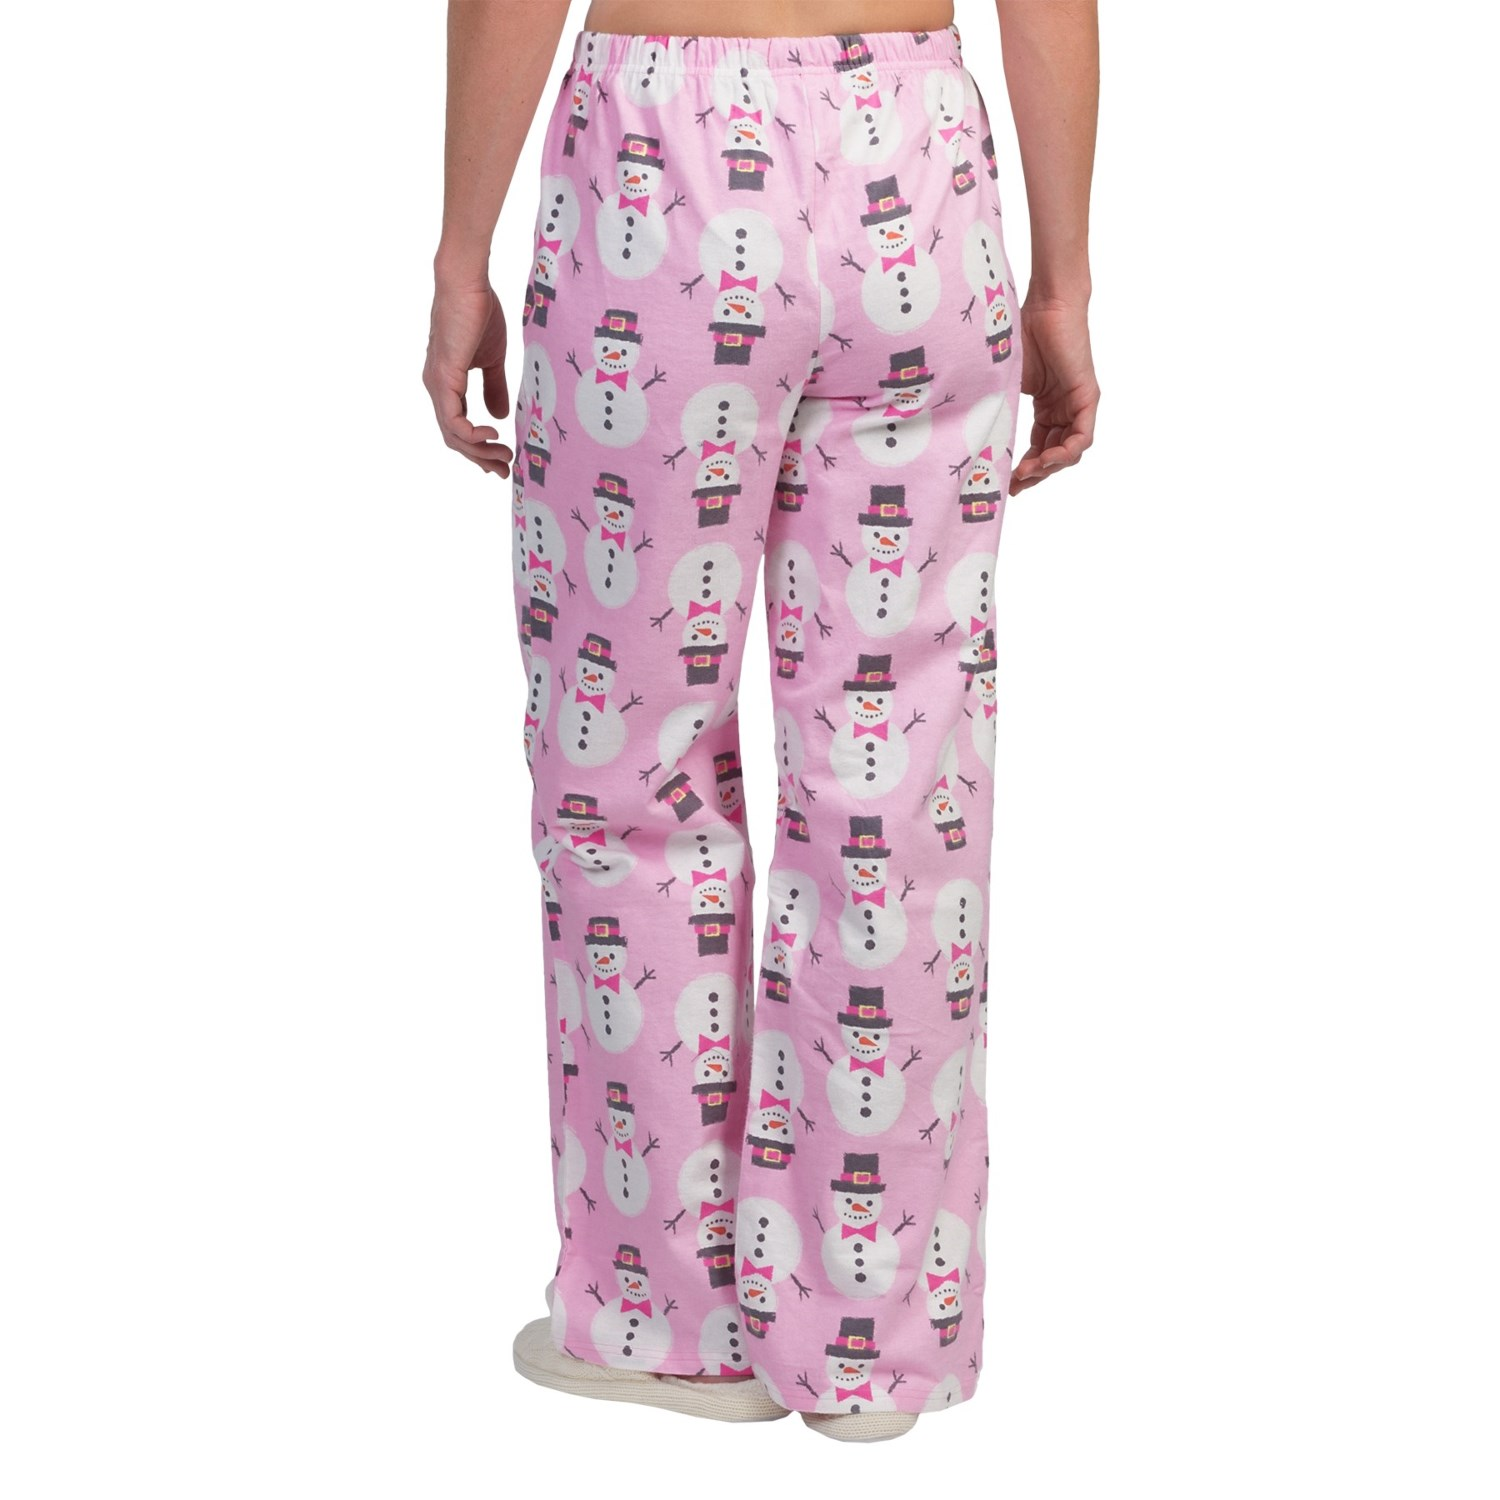 KayAnna Printed Flannel Pajama Bottoms (For Women) - Save 56% 9a68d7bd9